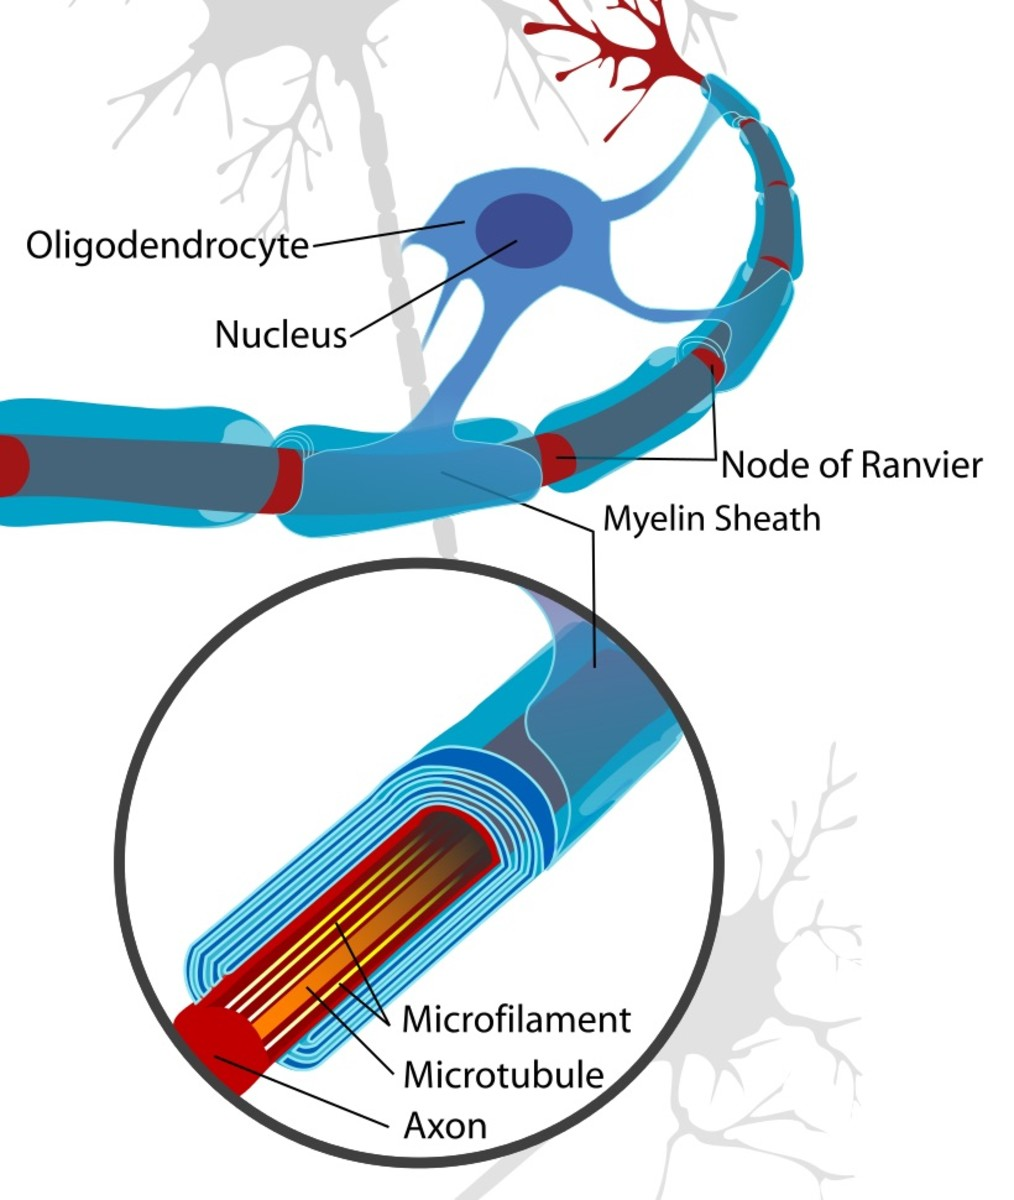 The myelin sheath around neurons in the CNS is made by projections from cells called oligodendrocytes. Multiple oligodendrocytes are needed to cover the length of the neuron. The membrane layers in the sheath are rich in fatty acids.